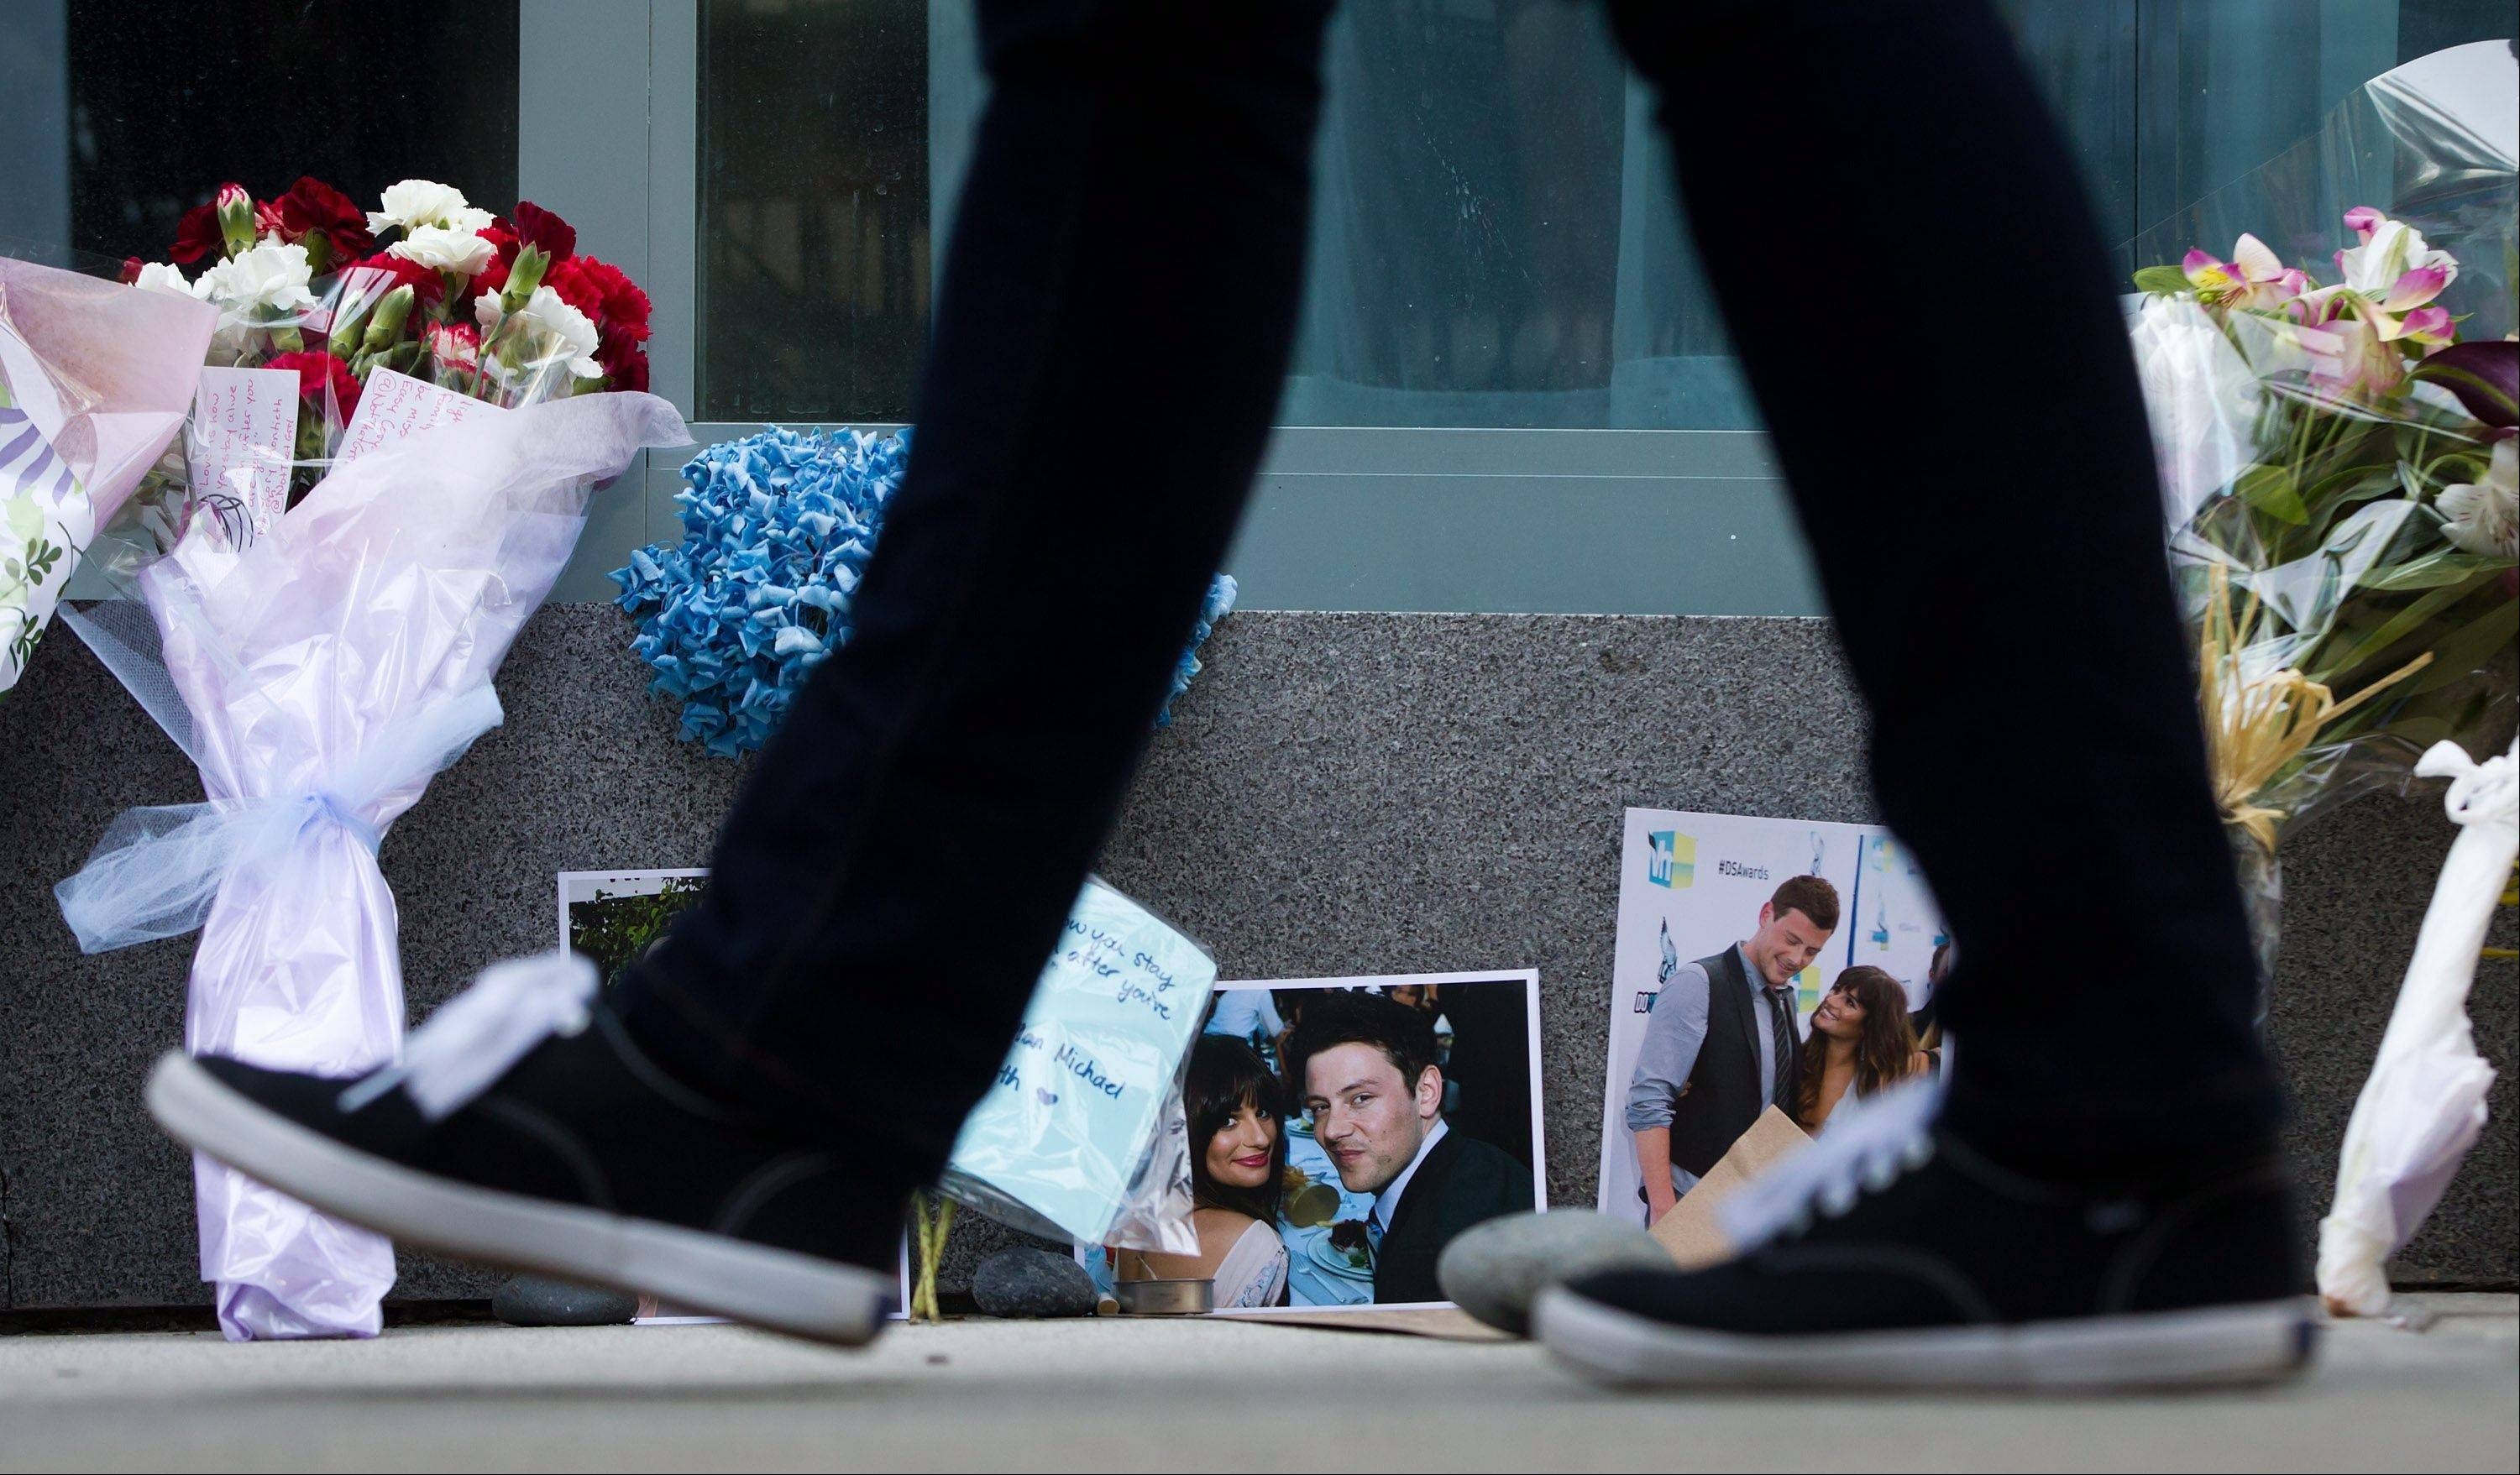 A pedestrian walks past photographs and flowers placed at a memorial for Canadian actor Cory Monteith outside the Fairmont Pacific Rim Hotel in Vancouver, British Columbia. Monteith, 31, was found dead in his room at the hotel on Saturday. The Vancouver coroner says he died from an overdose of heroin and alcohol.